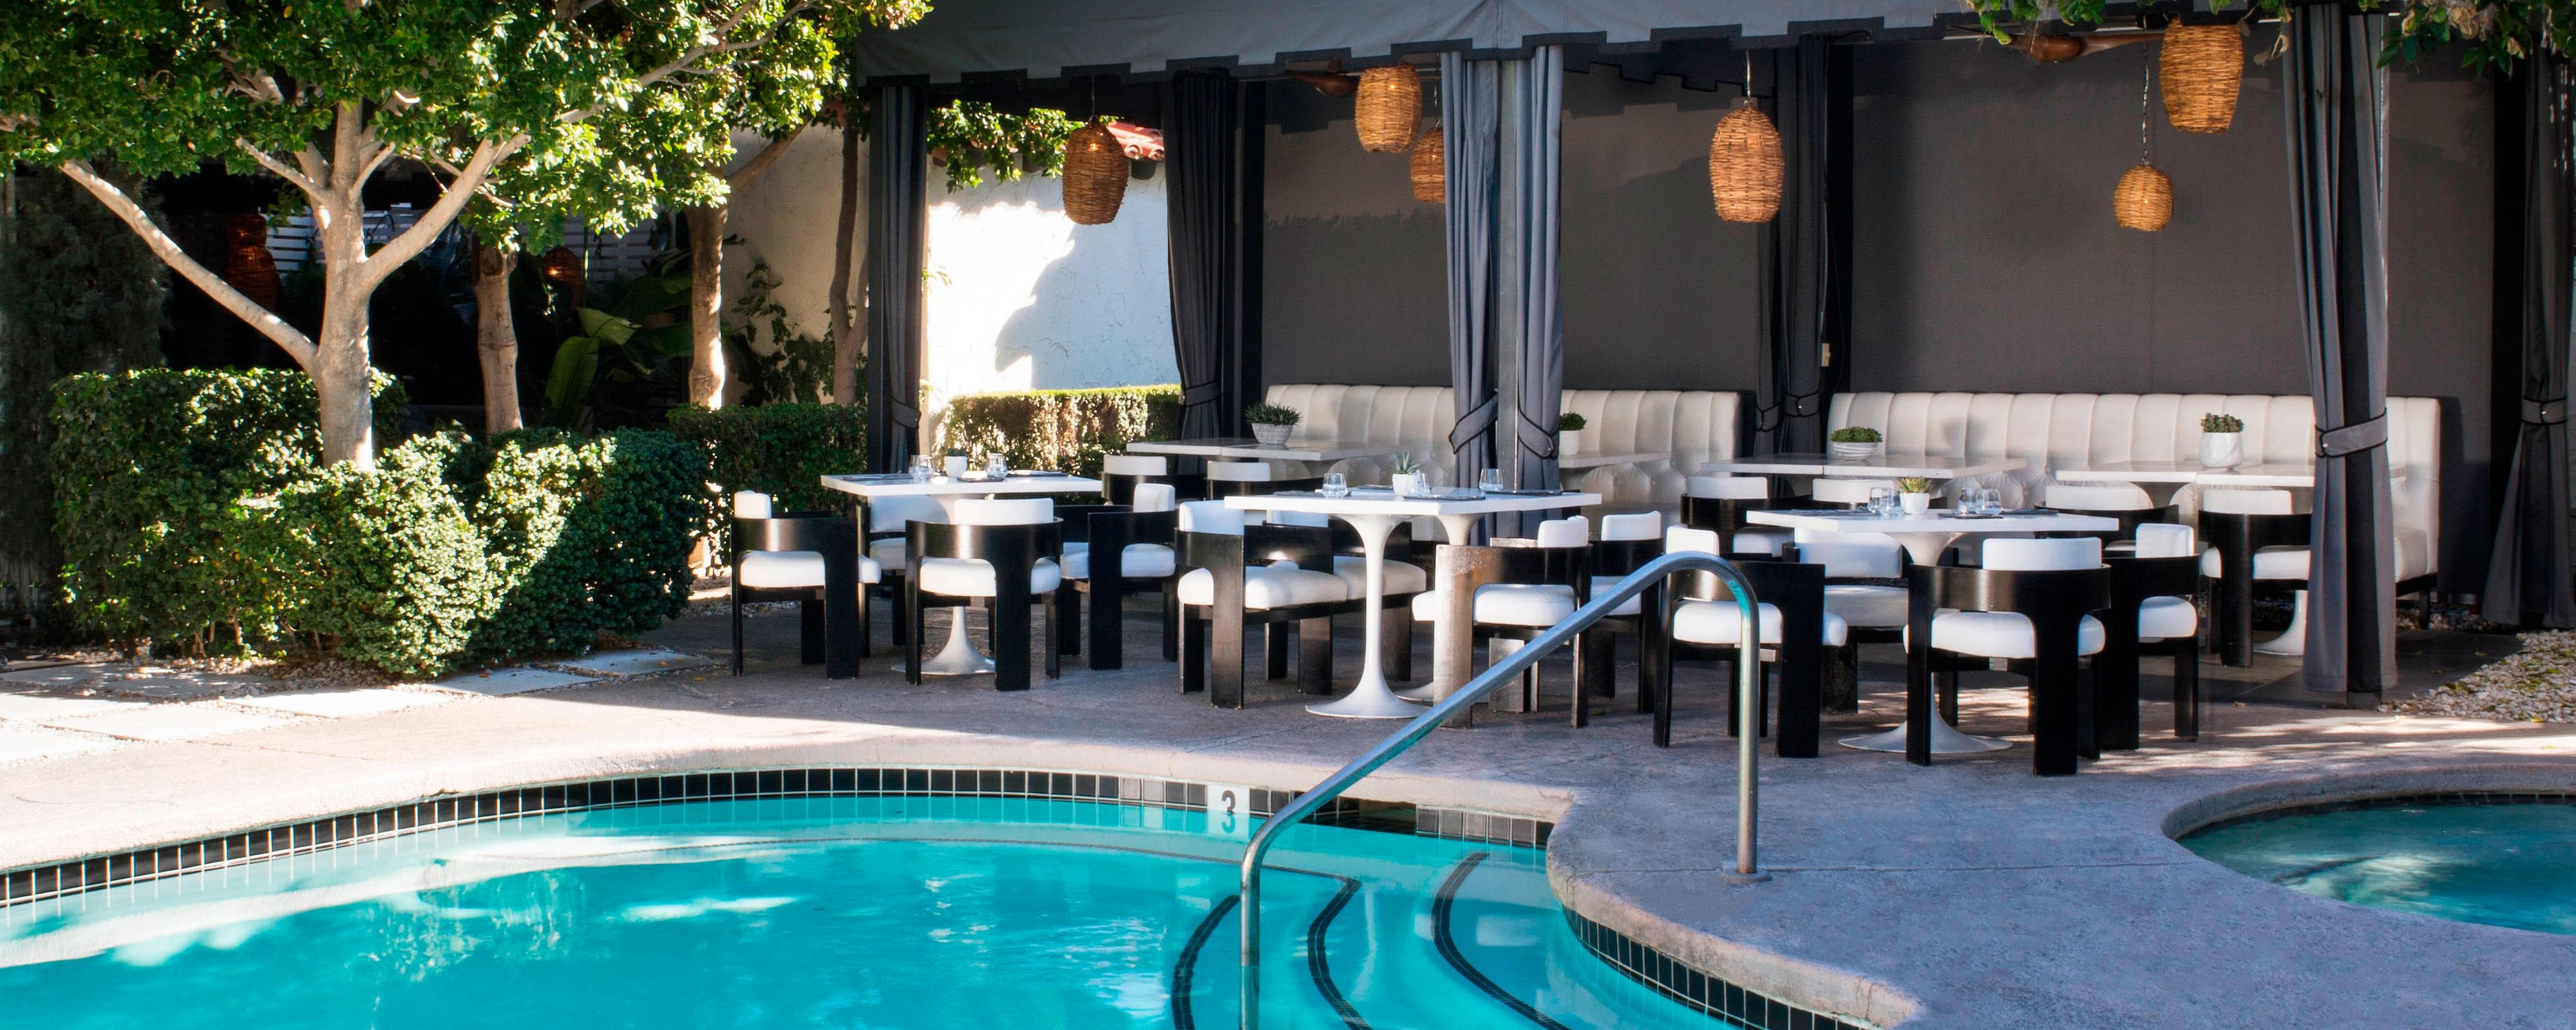 Chi Chi Pool & Patio Cabana